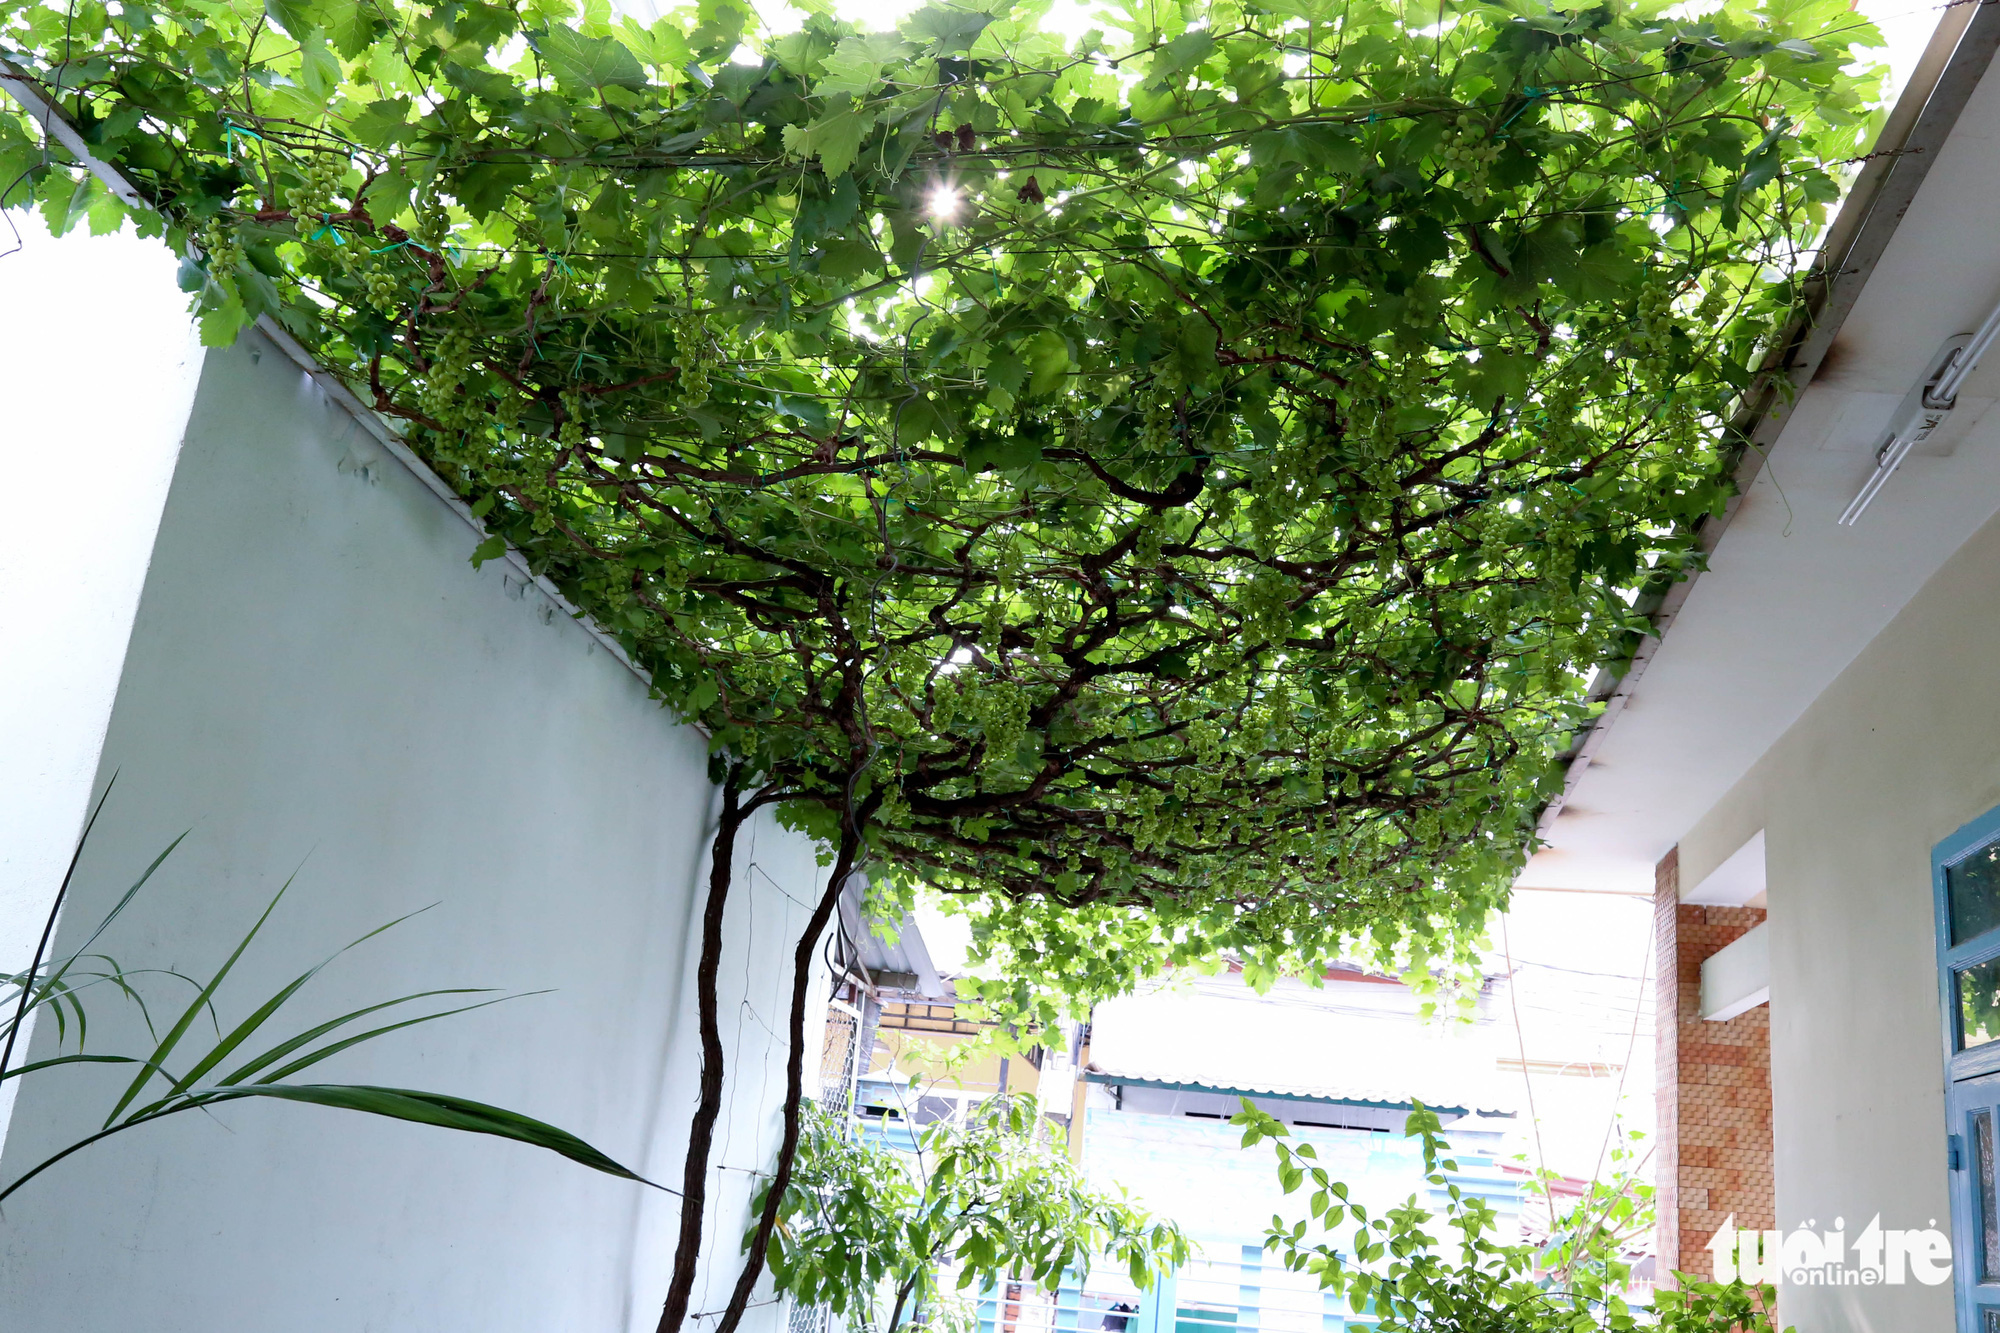 Grapevines are grown at Truong Van O's home garden in District 9, Ho Chi Minh City, Vietnam. Photo: Thu Hien / Tuoi Tre